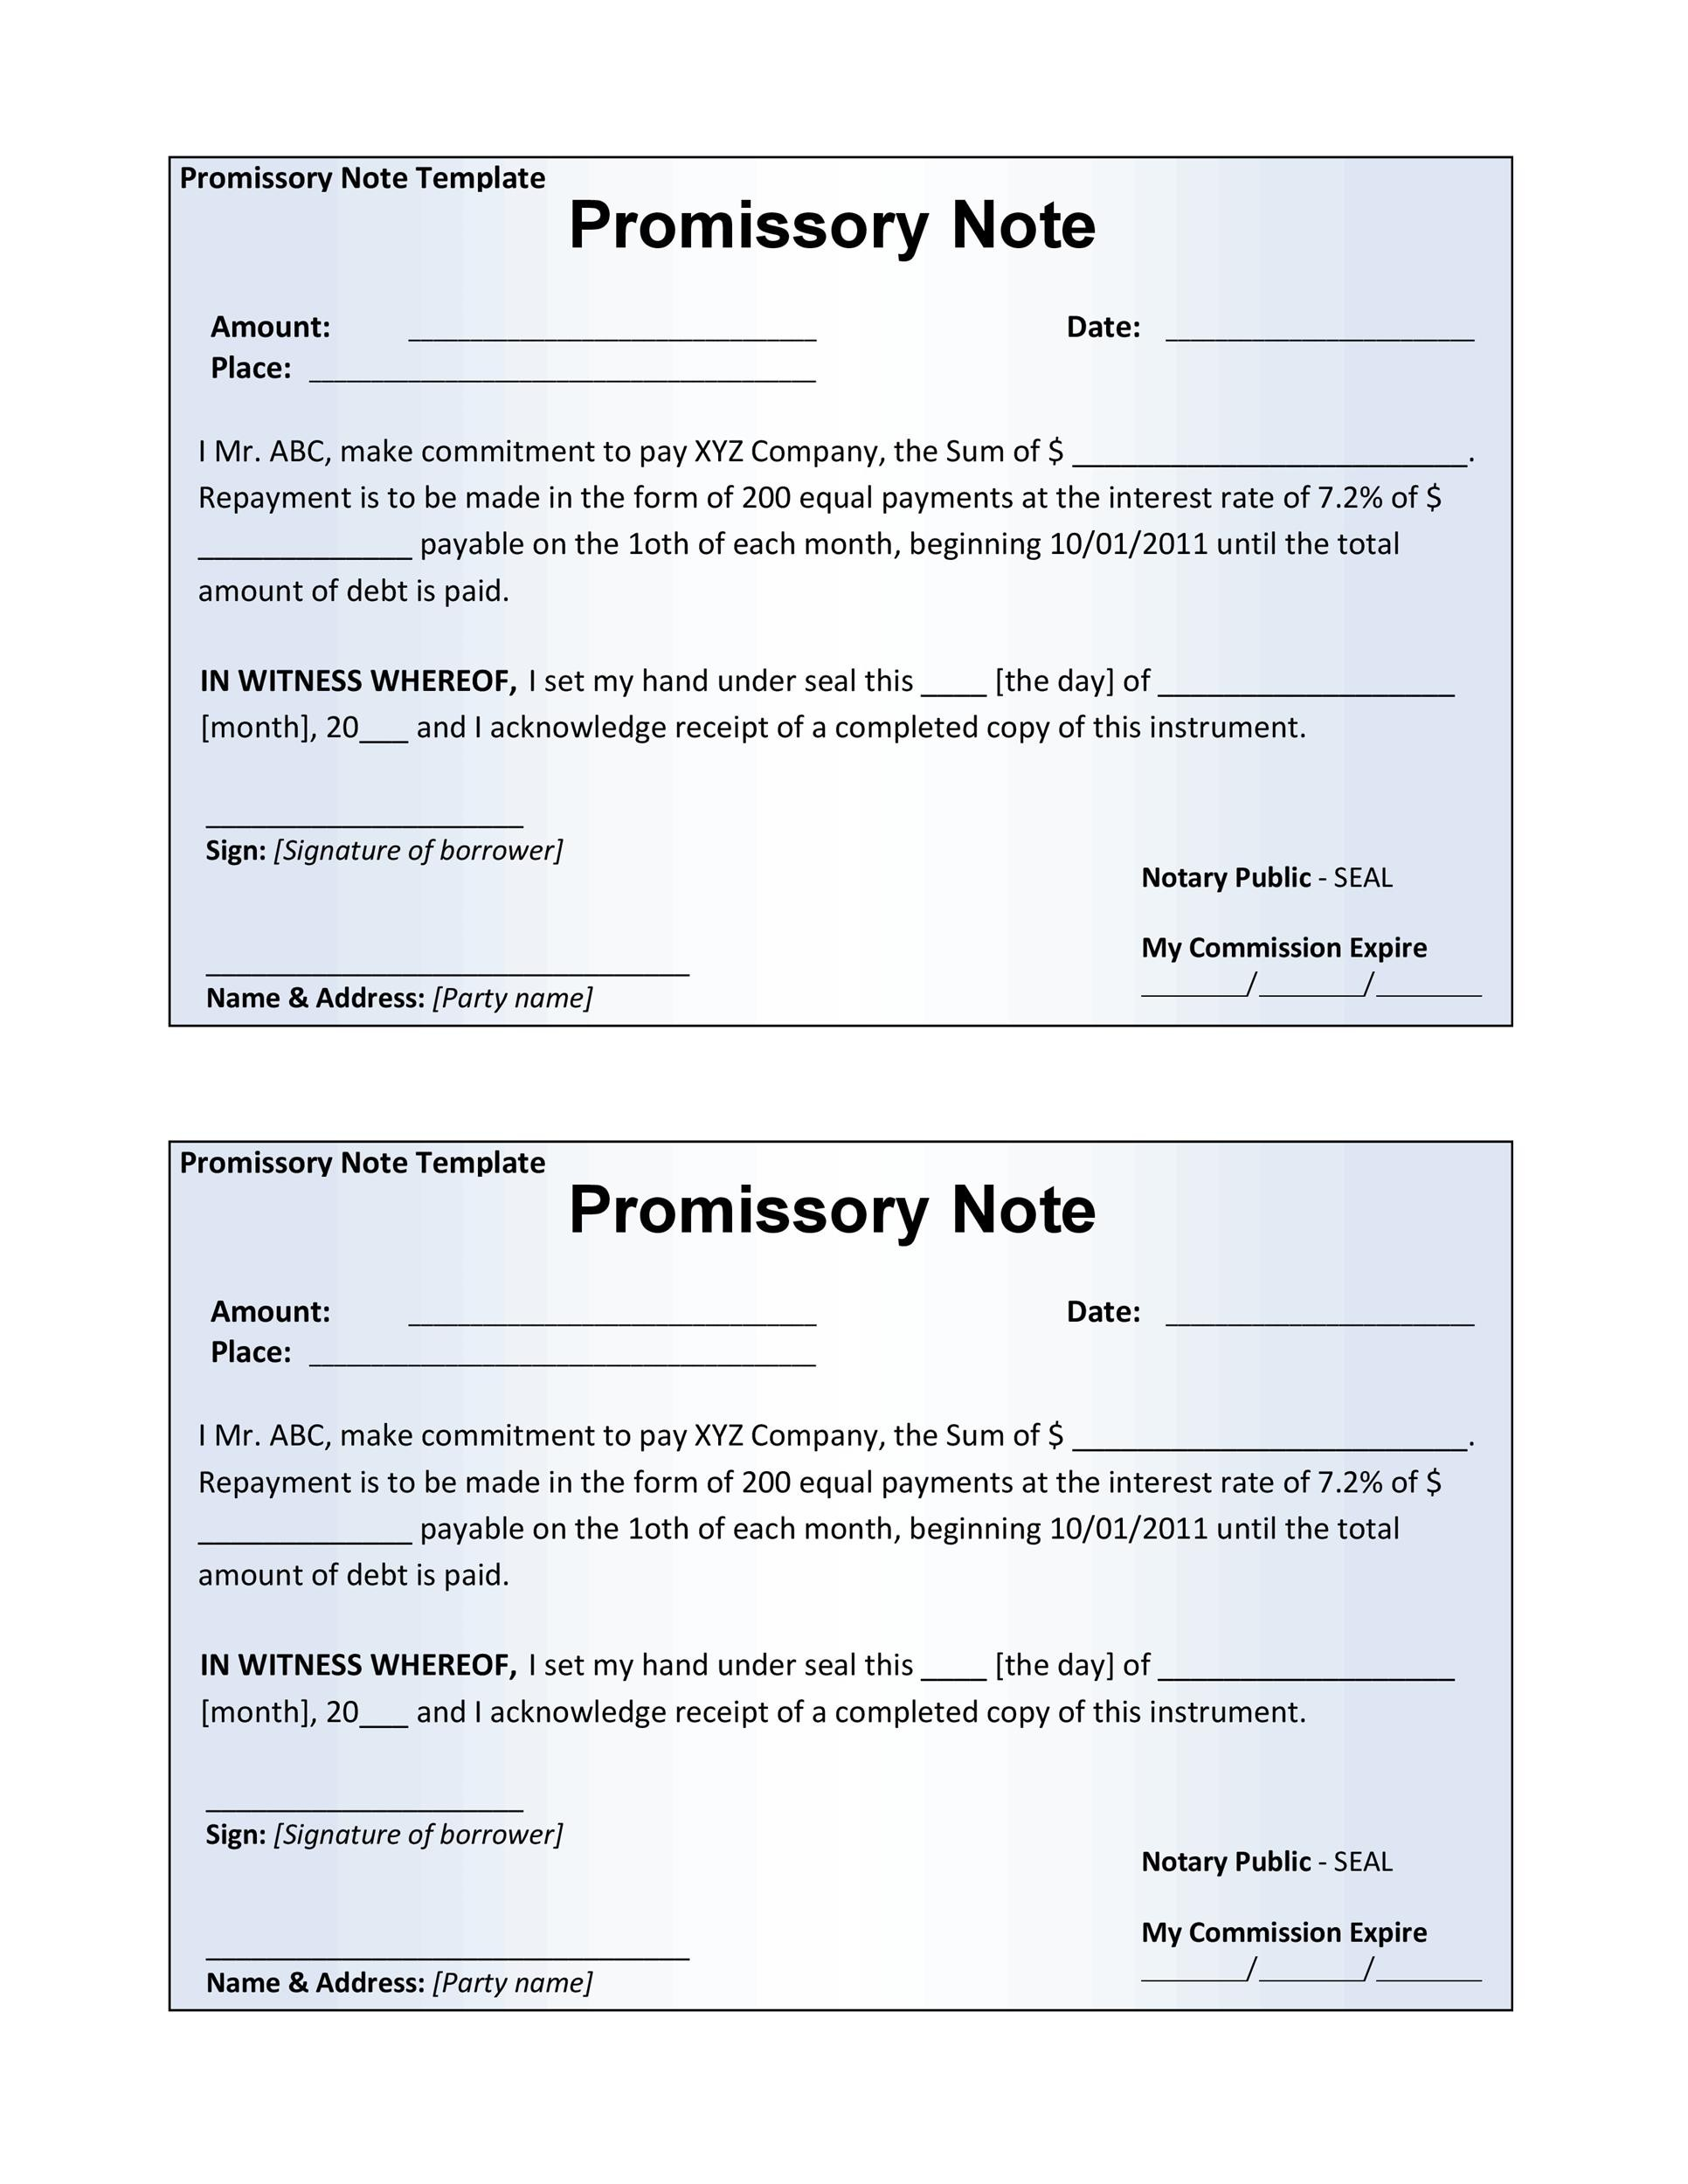 Promissory Note Template Pdf – Free Promissory Note Template Word